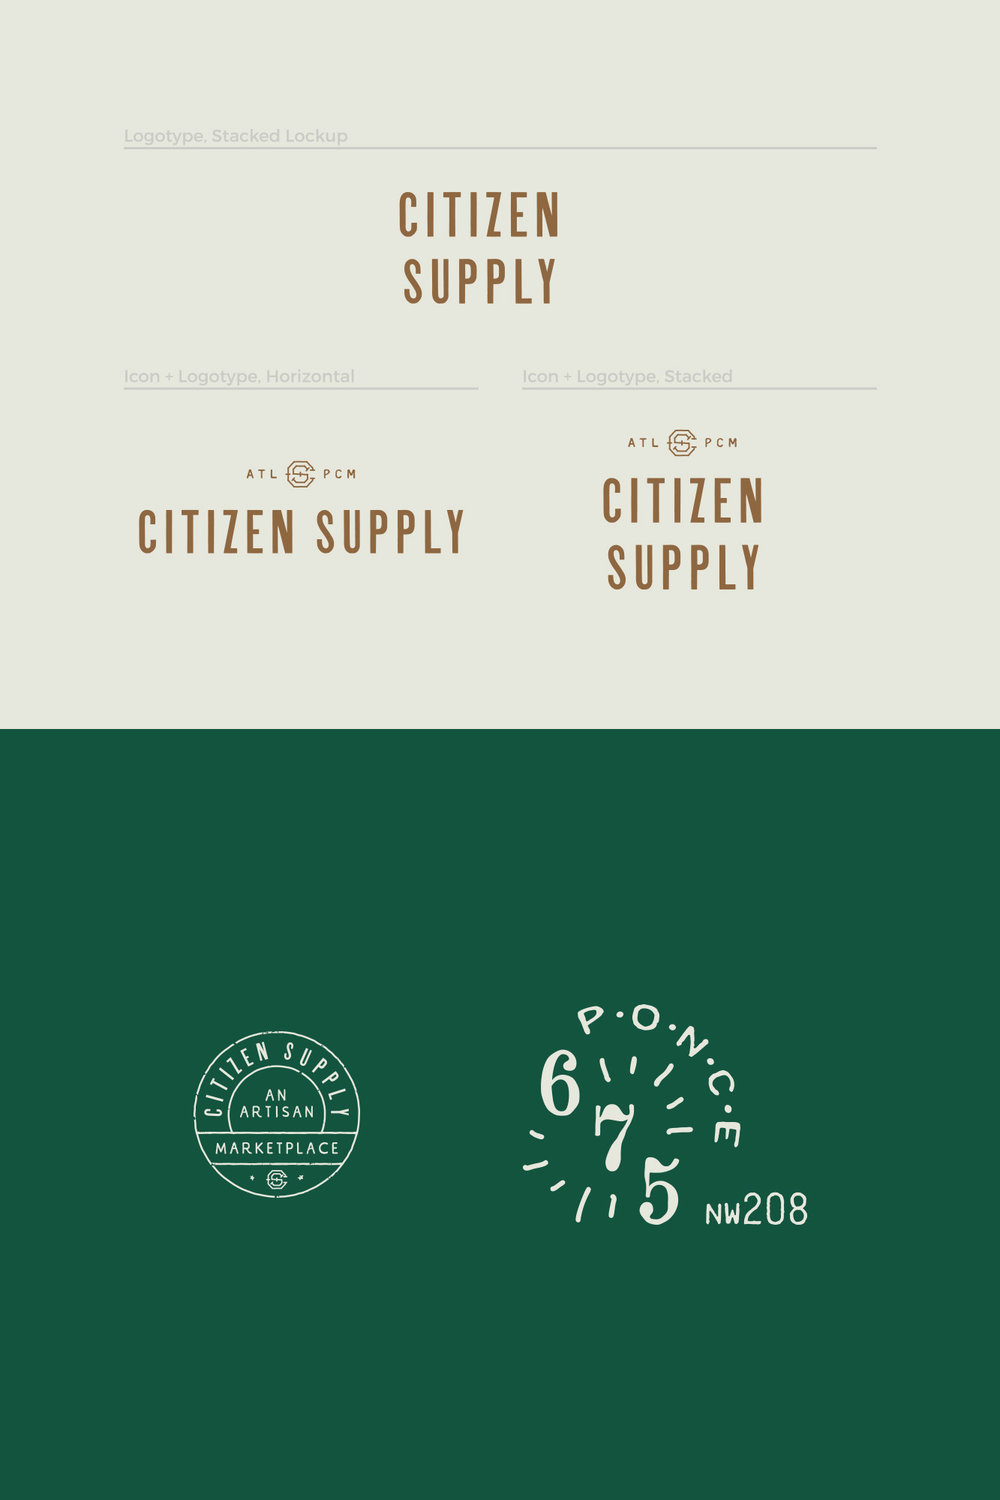 Visual brand identity graphic asset and icons design and style guides for Citizen Supply logo and retail store signage, an artisan marketplace in ponce city market.